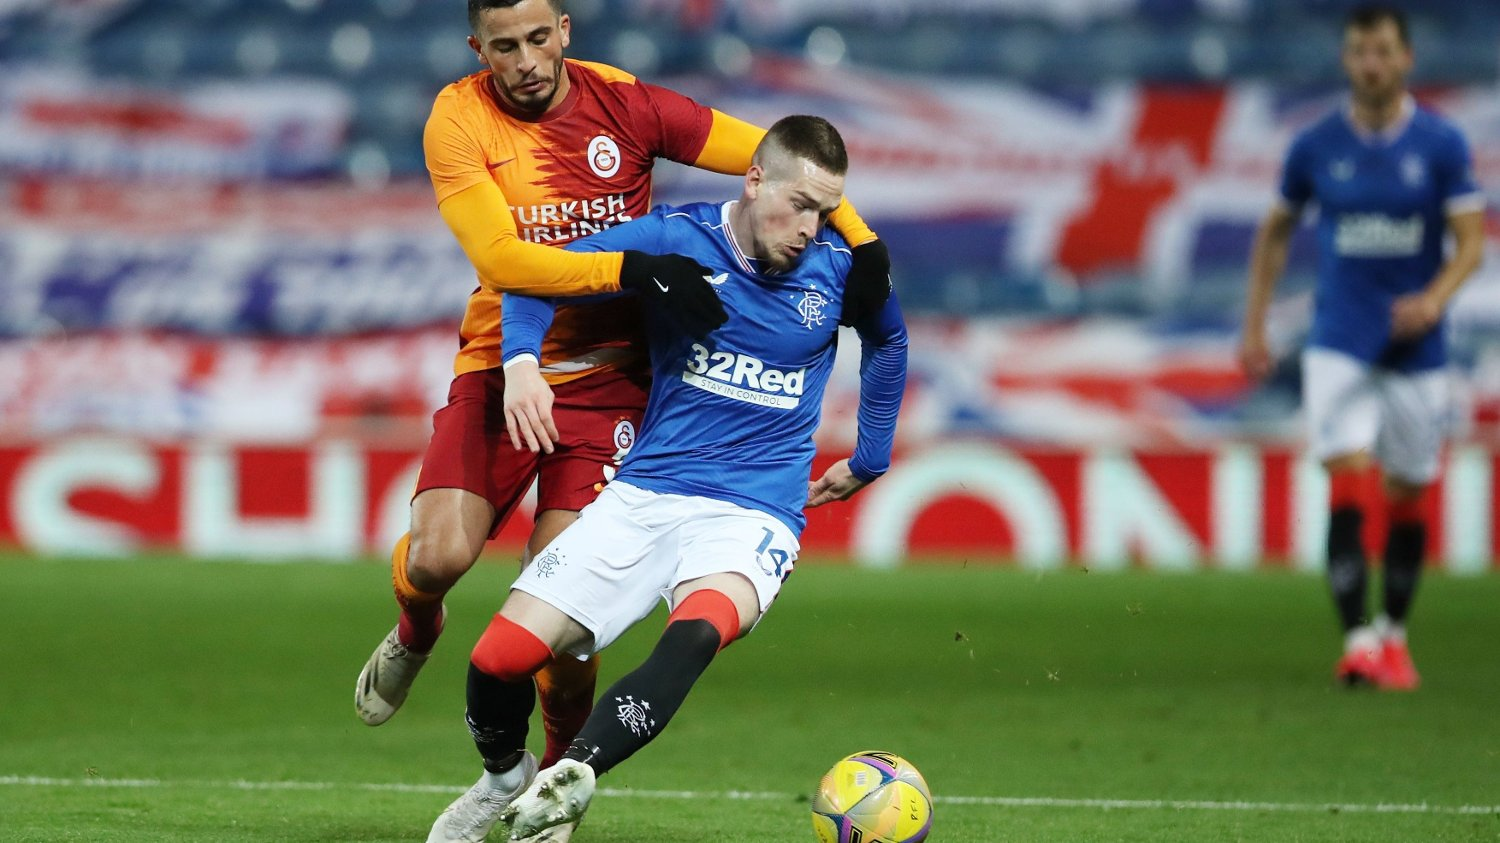 Soccer Football - Europa League - Play-off - Rangers v Galatasaray - Ibrox Stadium, Glasgow, Scotland, Britain - October 1, 2020. Rangers' Ryan Kent in action with Galatasaray's Omar Elabdellaoui. Pool via REUTERS/Ian Macnicol